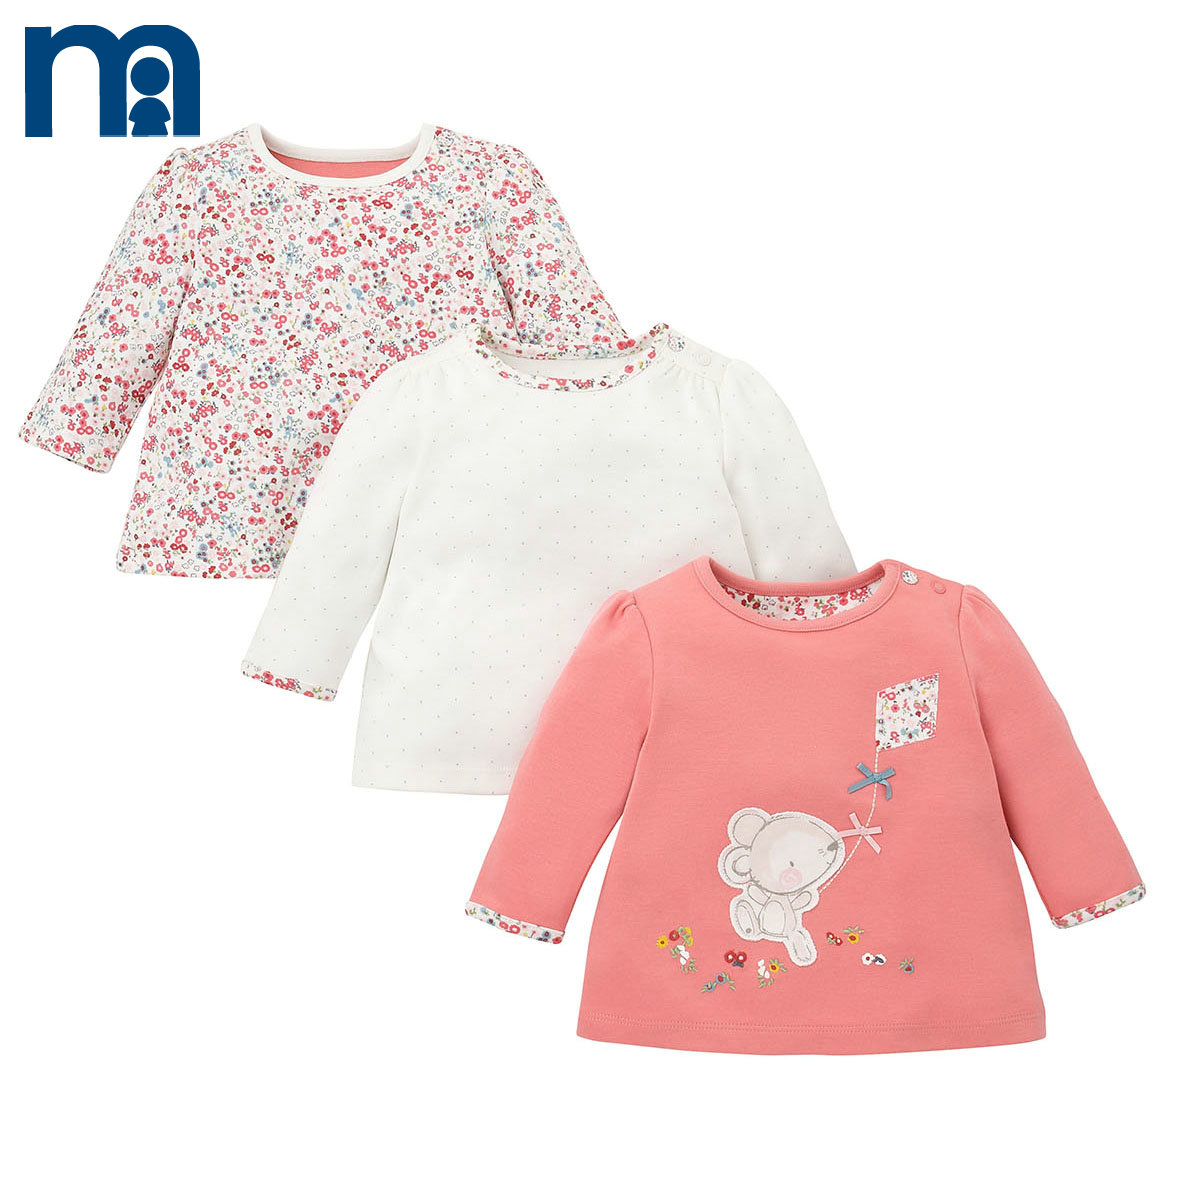 30dc0786ff74 USD 81.35  mothercare baby girl Long Sleeve T-shirt 3pcs newborn ...